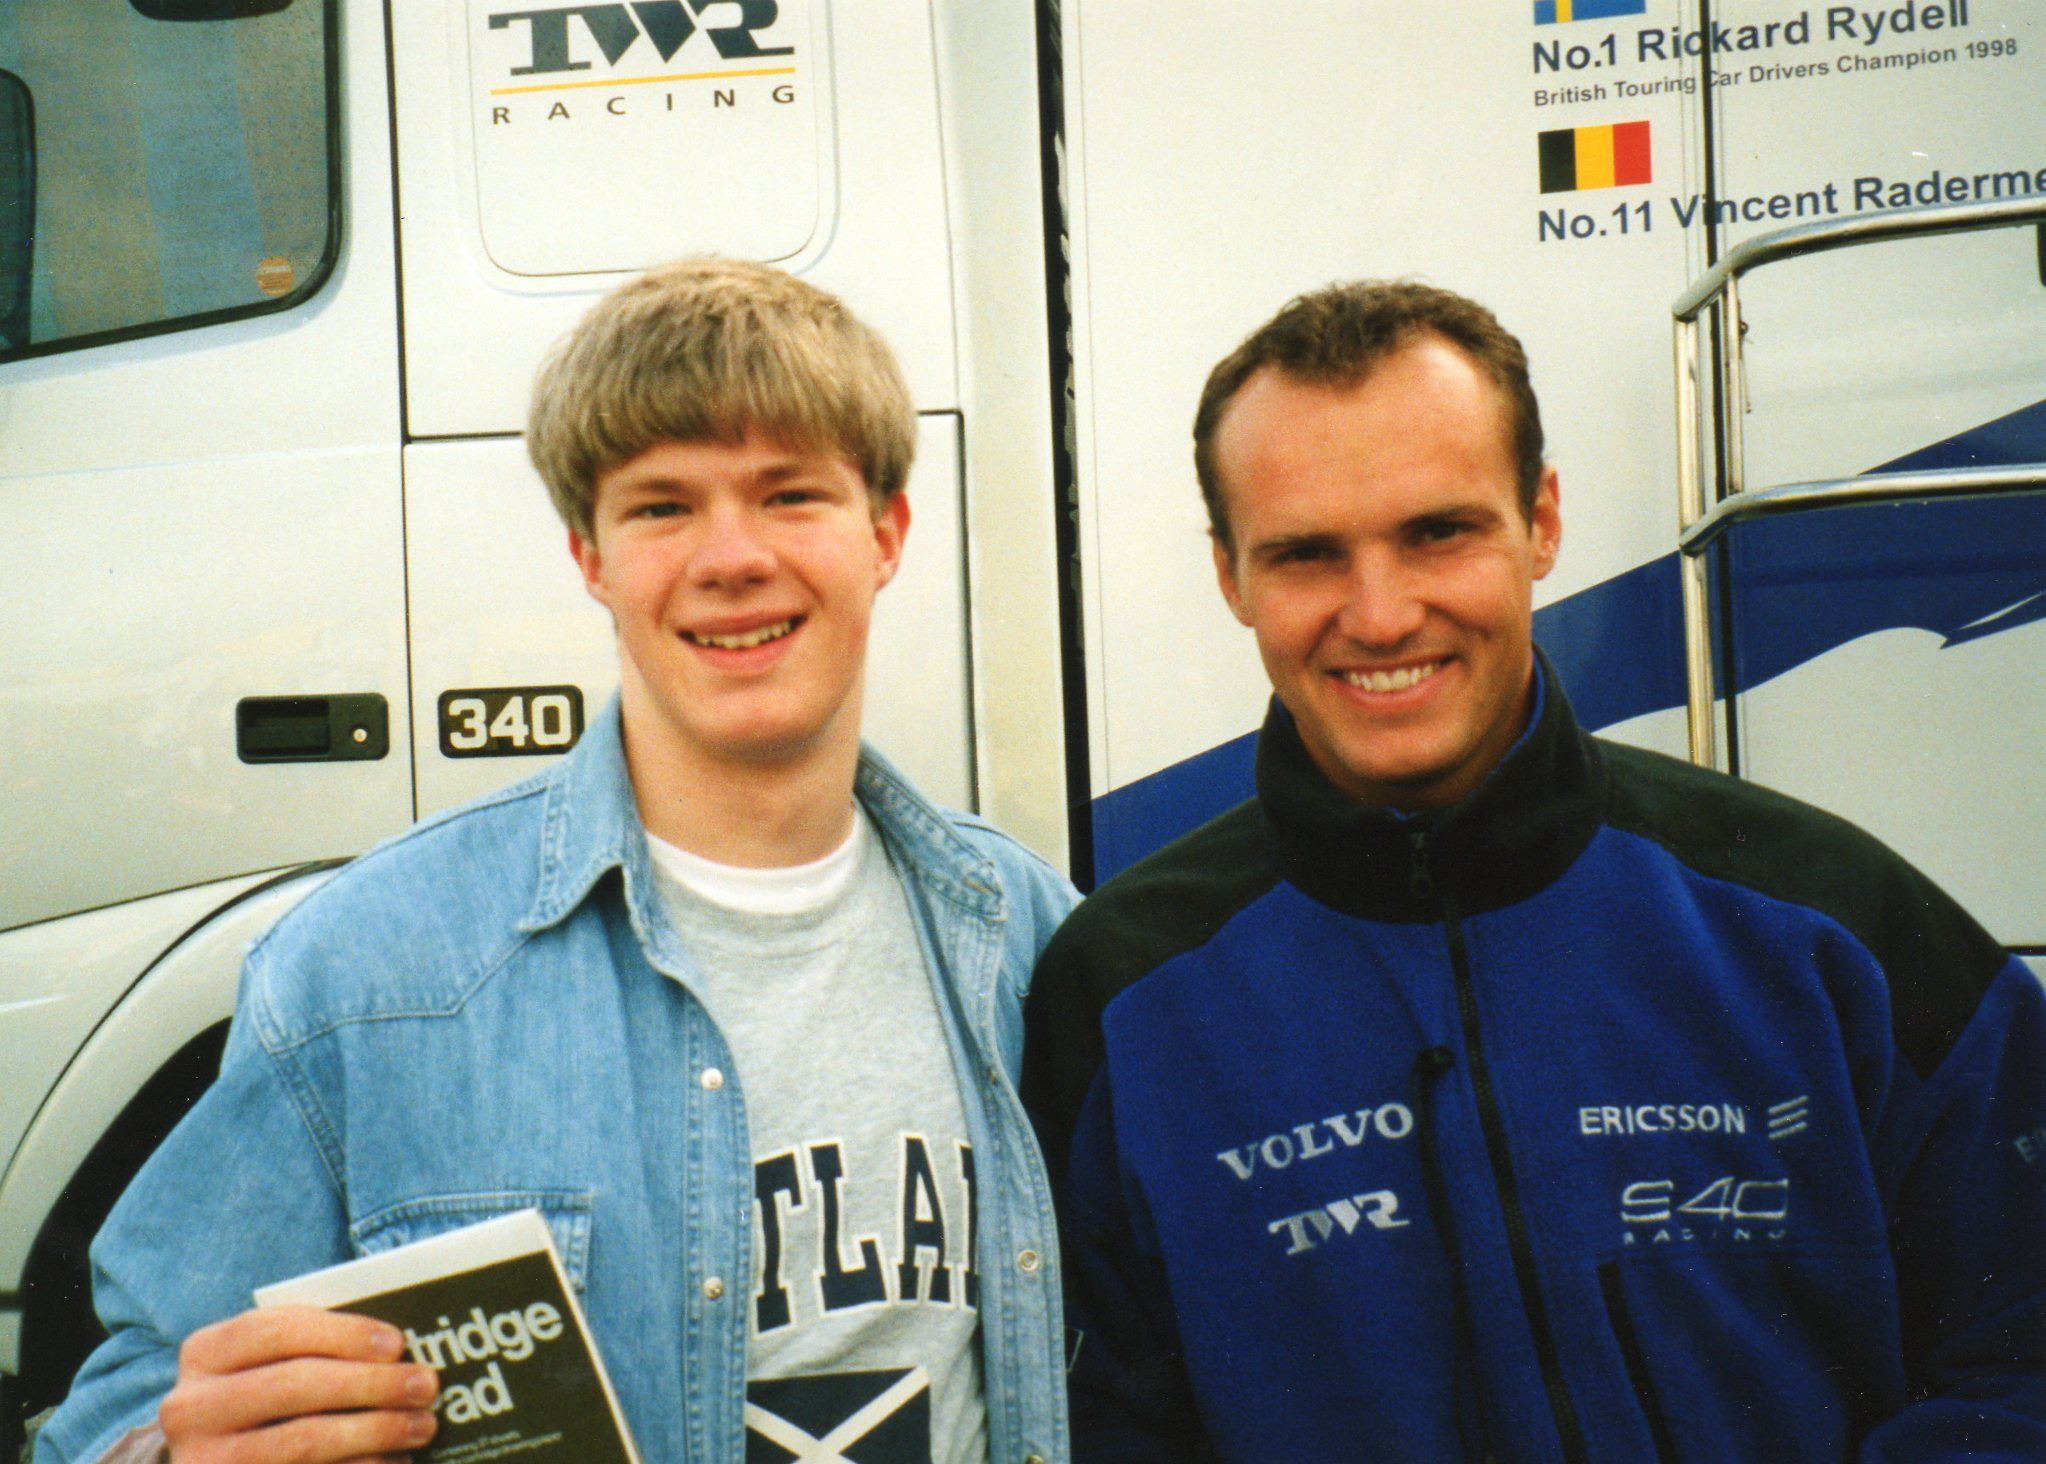 With Rickard Rydell at Knockhill, August 1999.